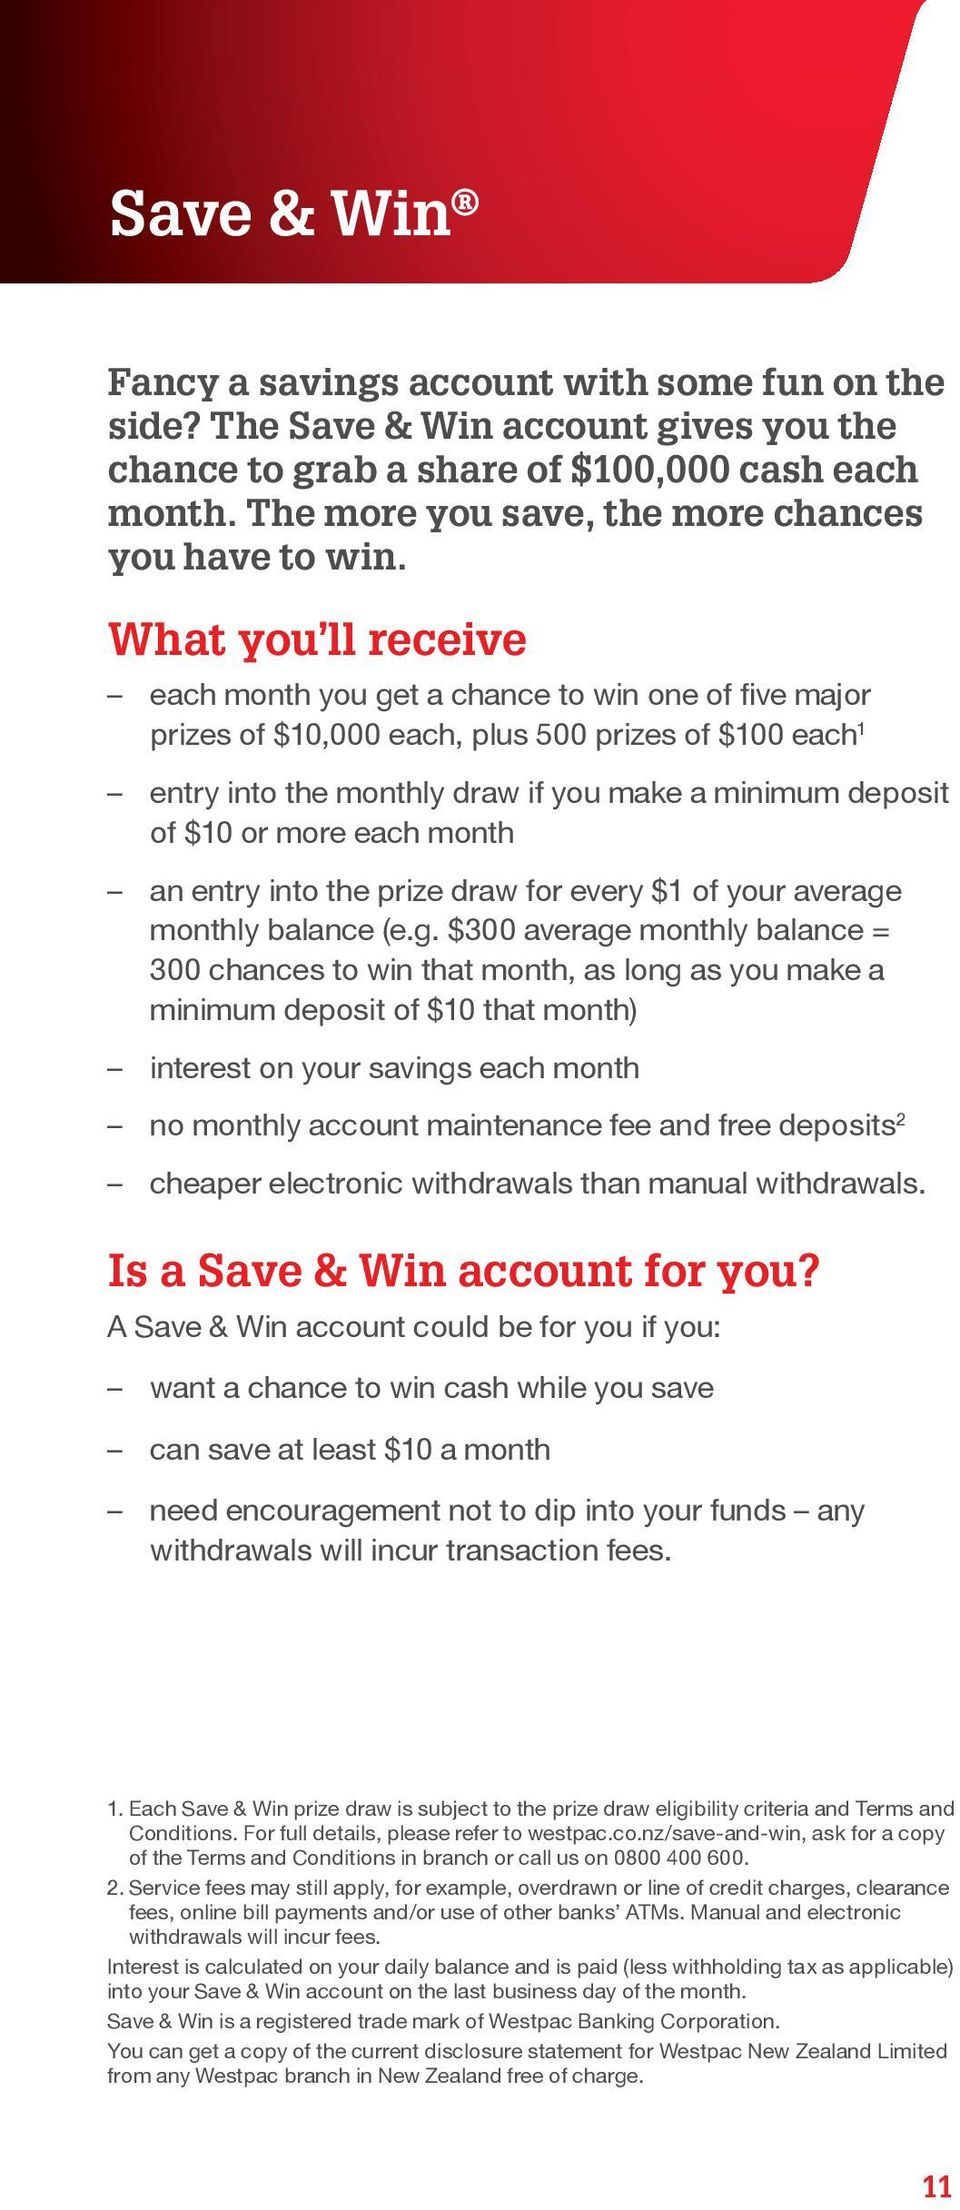 What you ll receive each month you get a chance to win one of five major prizes of $10,000 each, plus 500 prizes of $100 each 1 entry into the monthly draw if you make a minimum deposit of $10 or